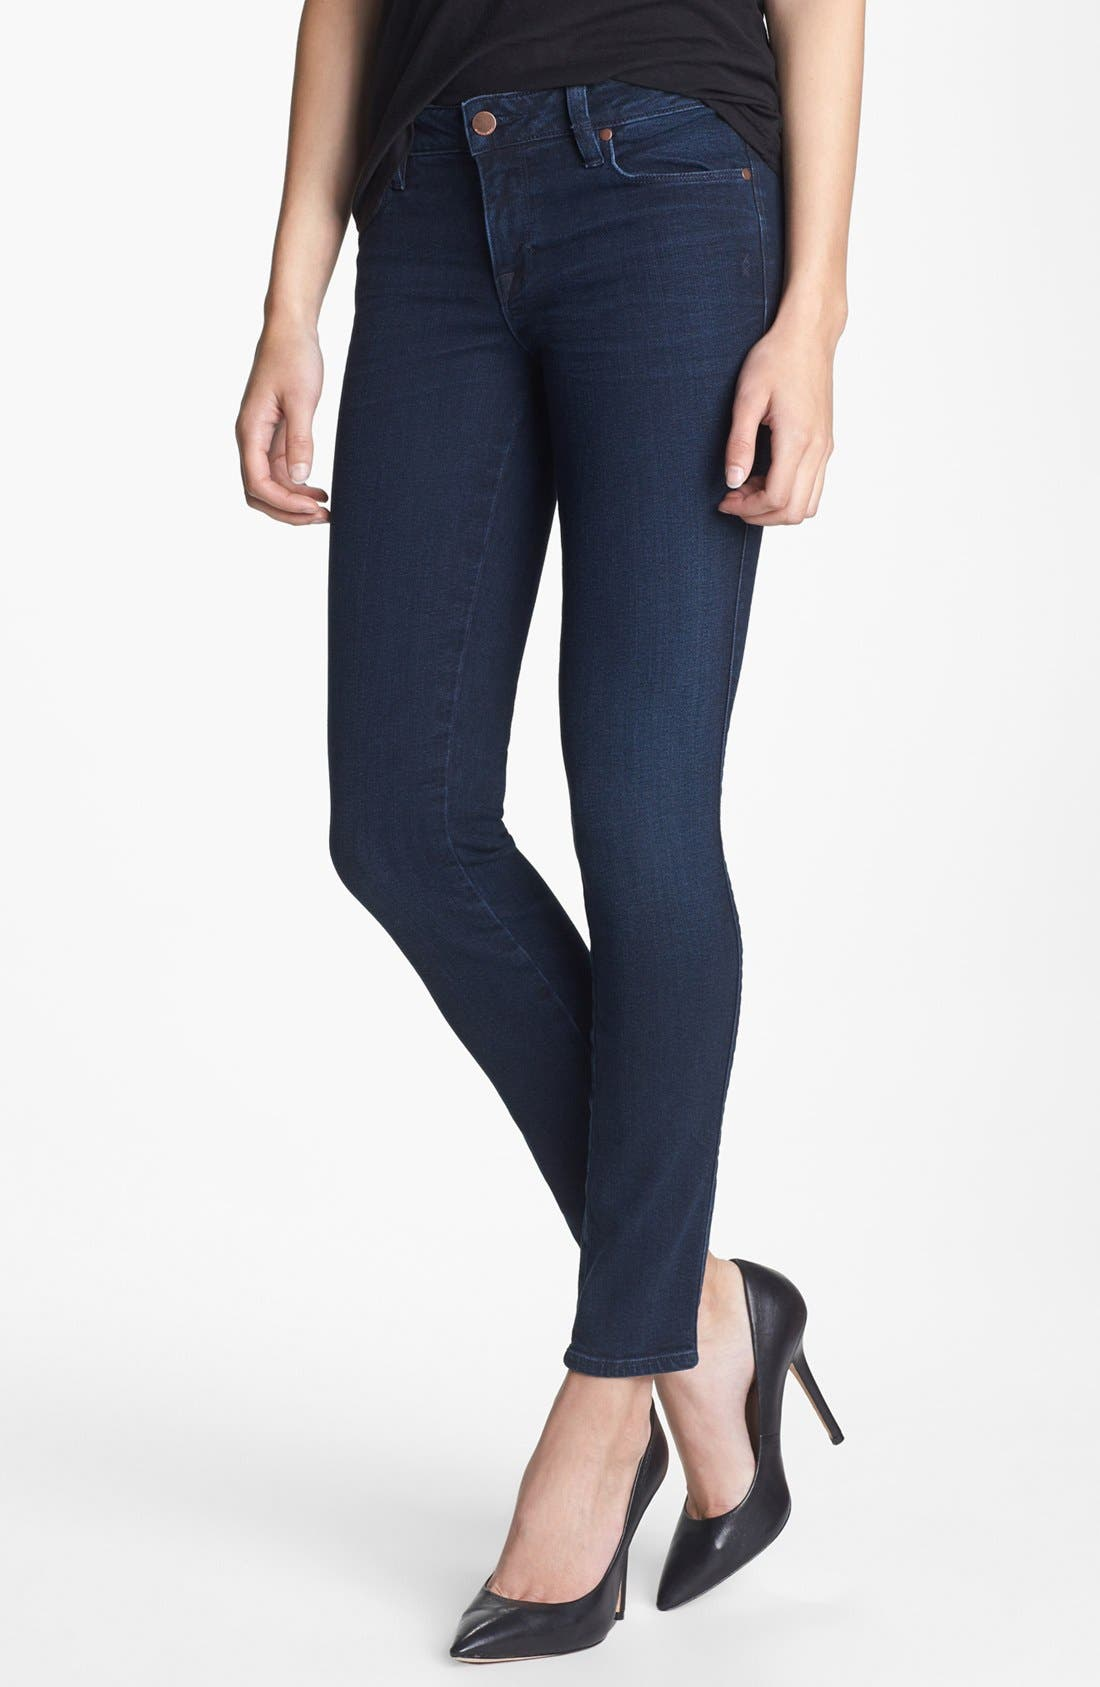 'The Shya' Cigarette Skinny Jeans,                             Main thumbnail 1, color,                             401